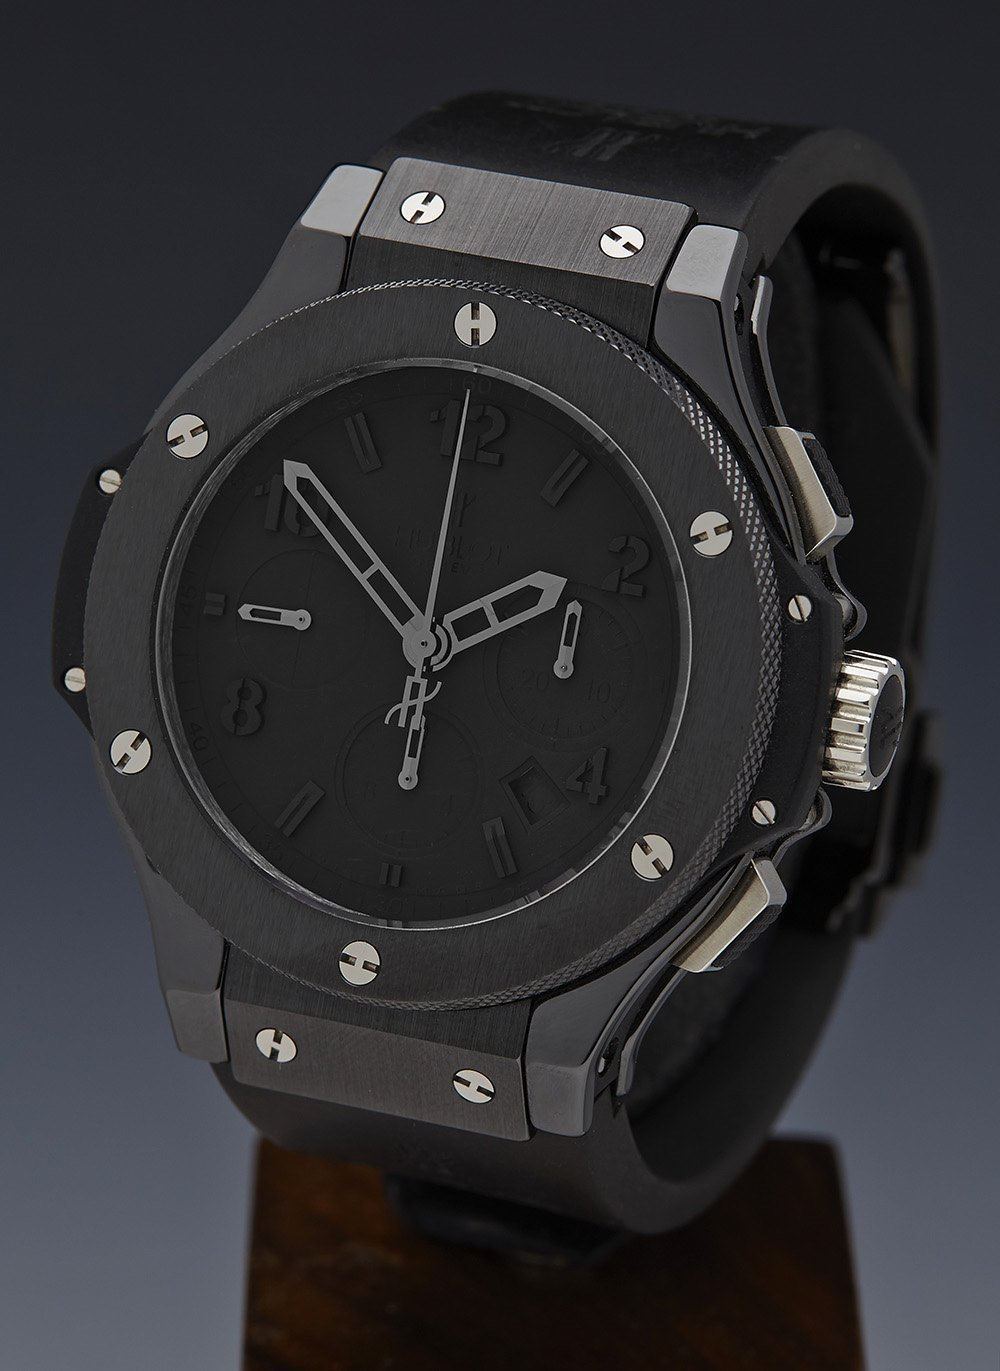 002_hublot-big-bang-all-black-chronograph-44mm-xl-limited-edition-301cx134rx1